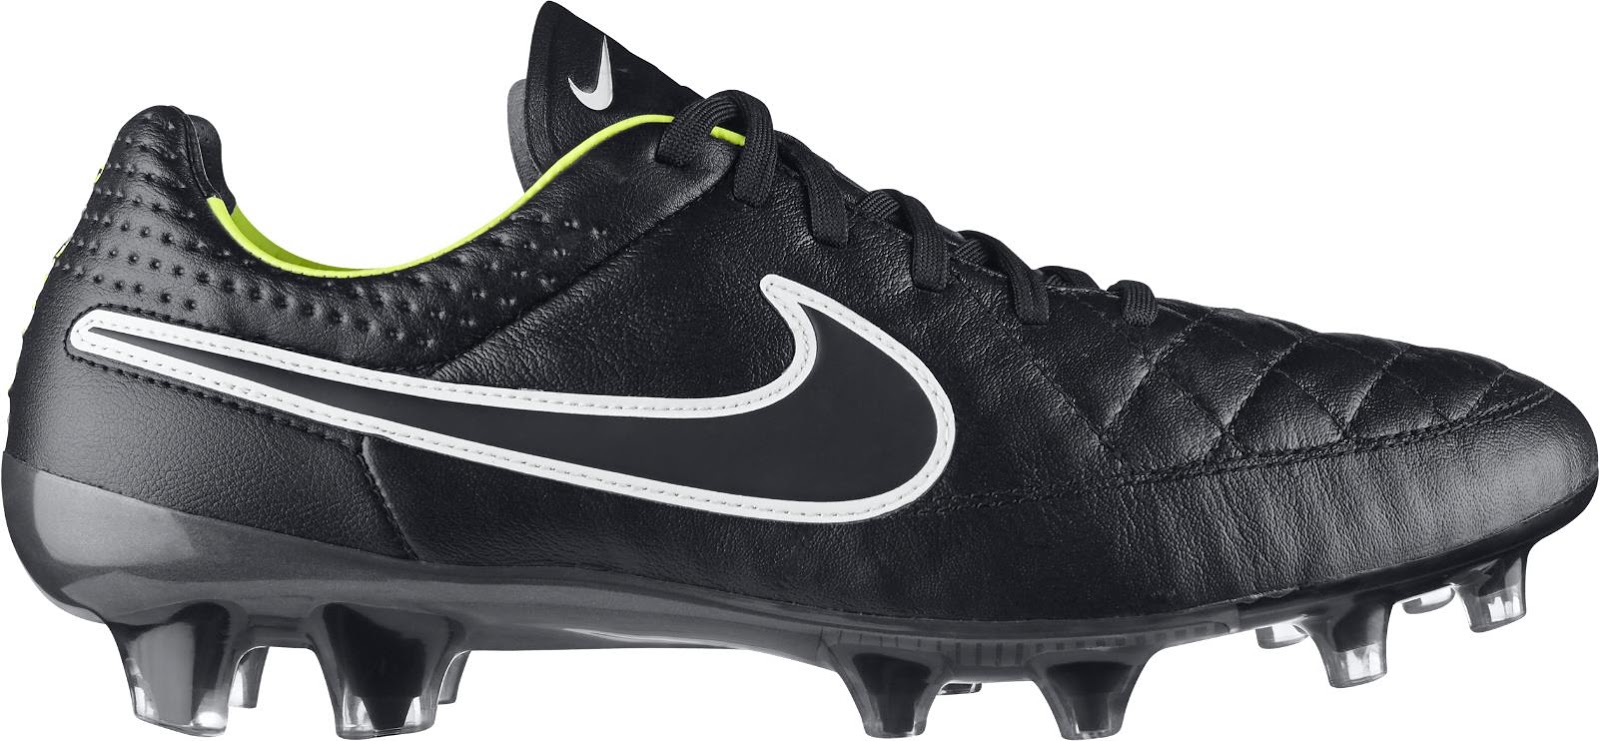 99a2ee151 Air Black V Chamber Id Tiempo Nike Iii Affect Notary ORvgBwxq